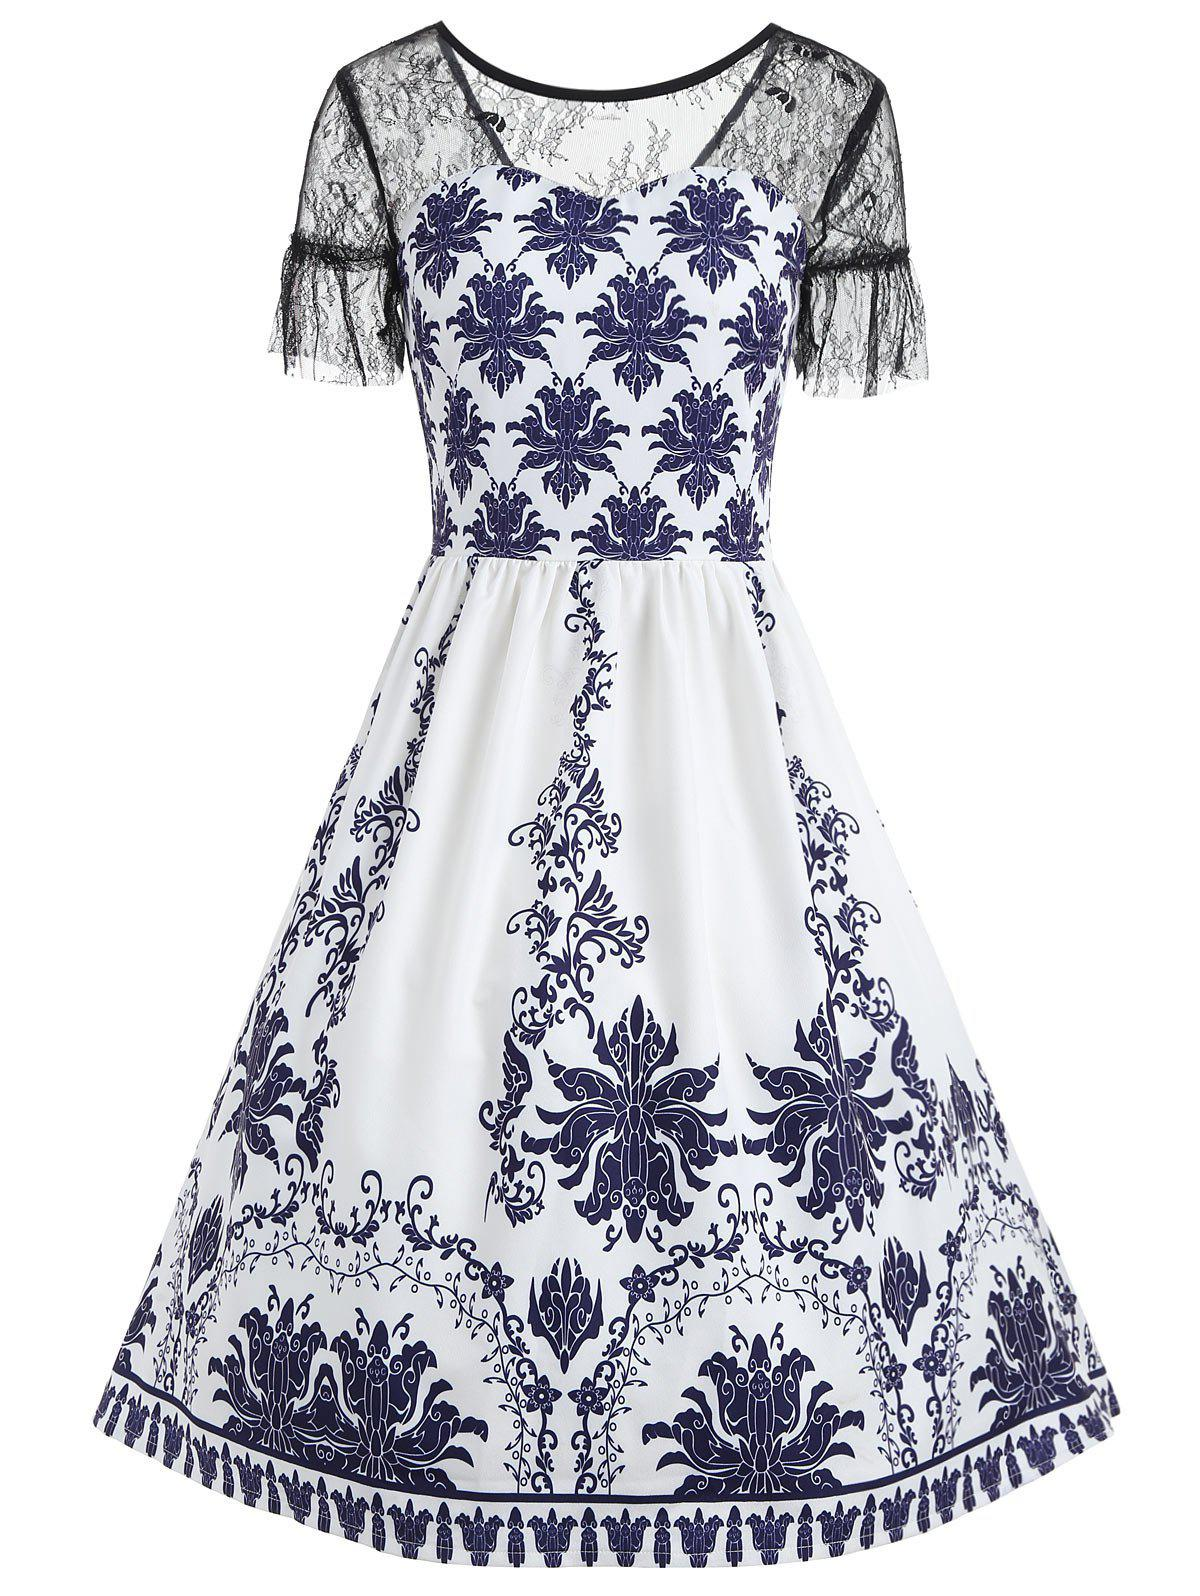 New Print Lace Trim Dress